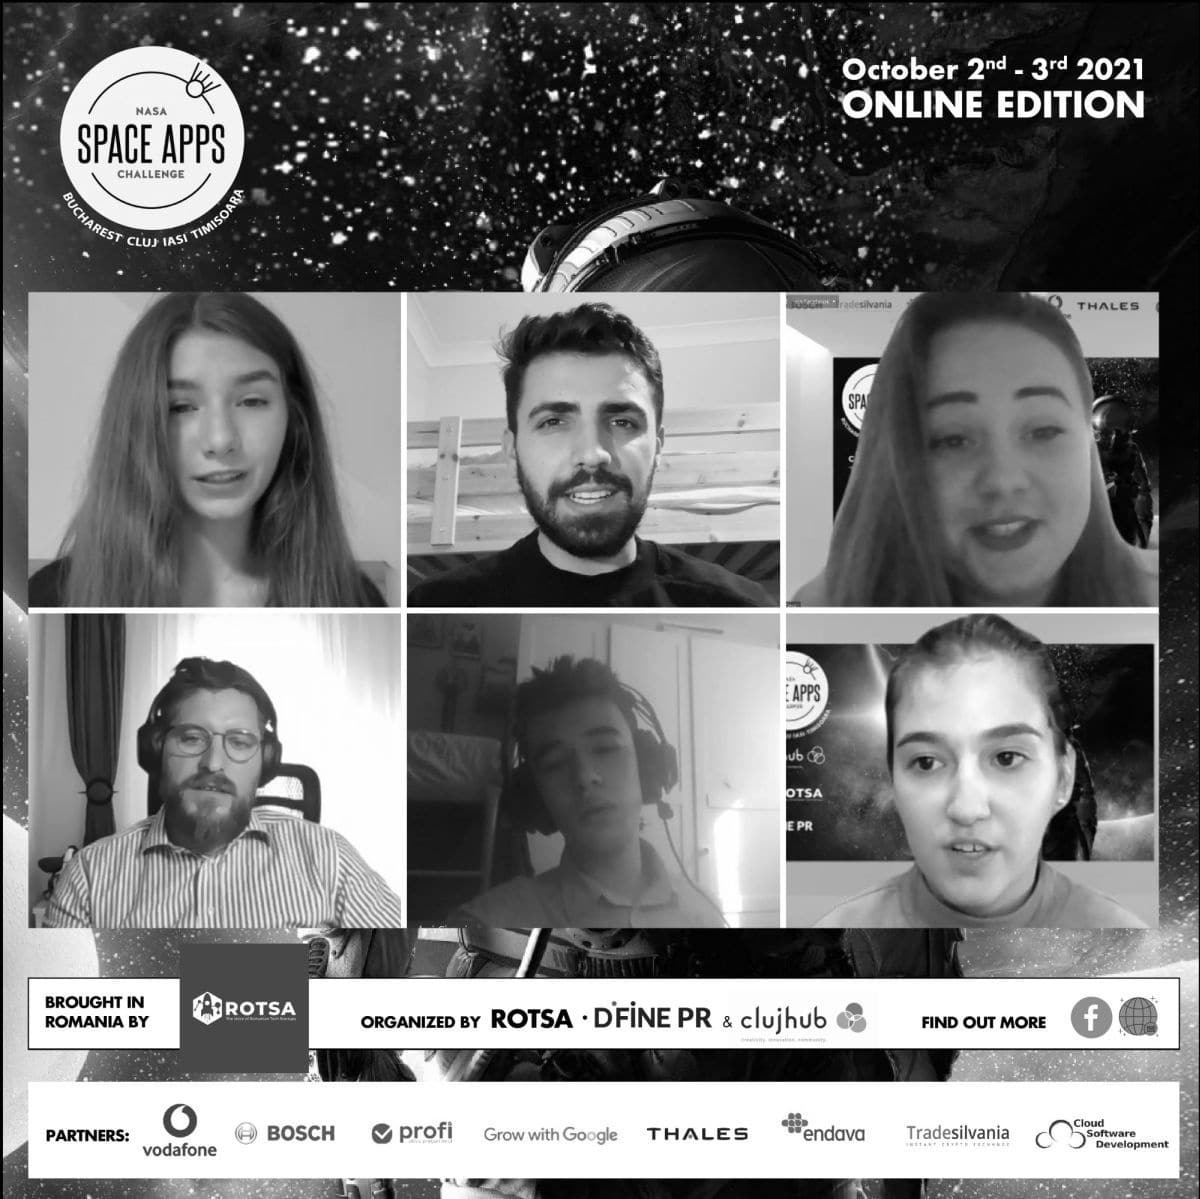 200 participants and 6 winning teams of the NASA Space Apps Challenge Romania 2021 hackathon